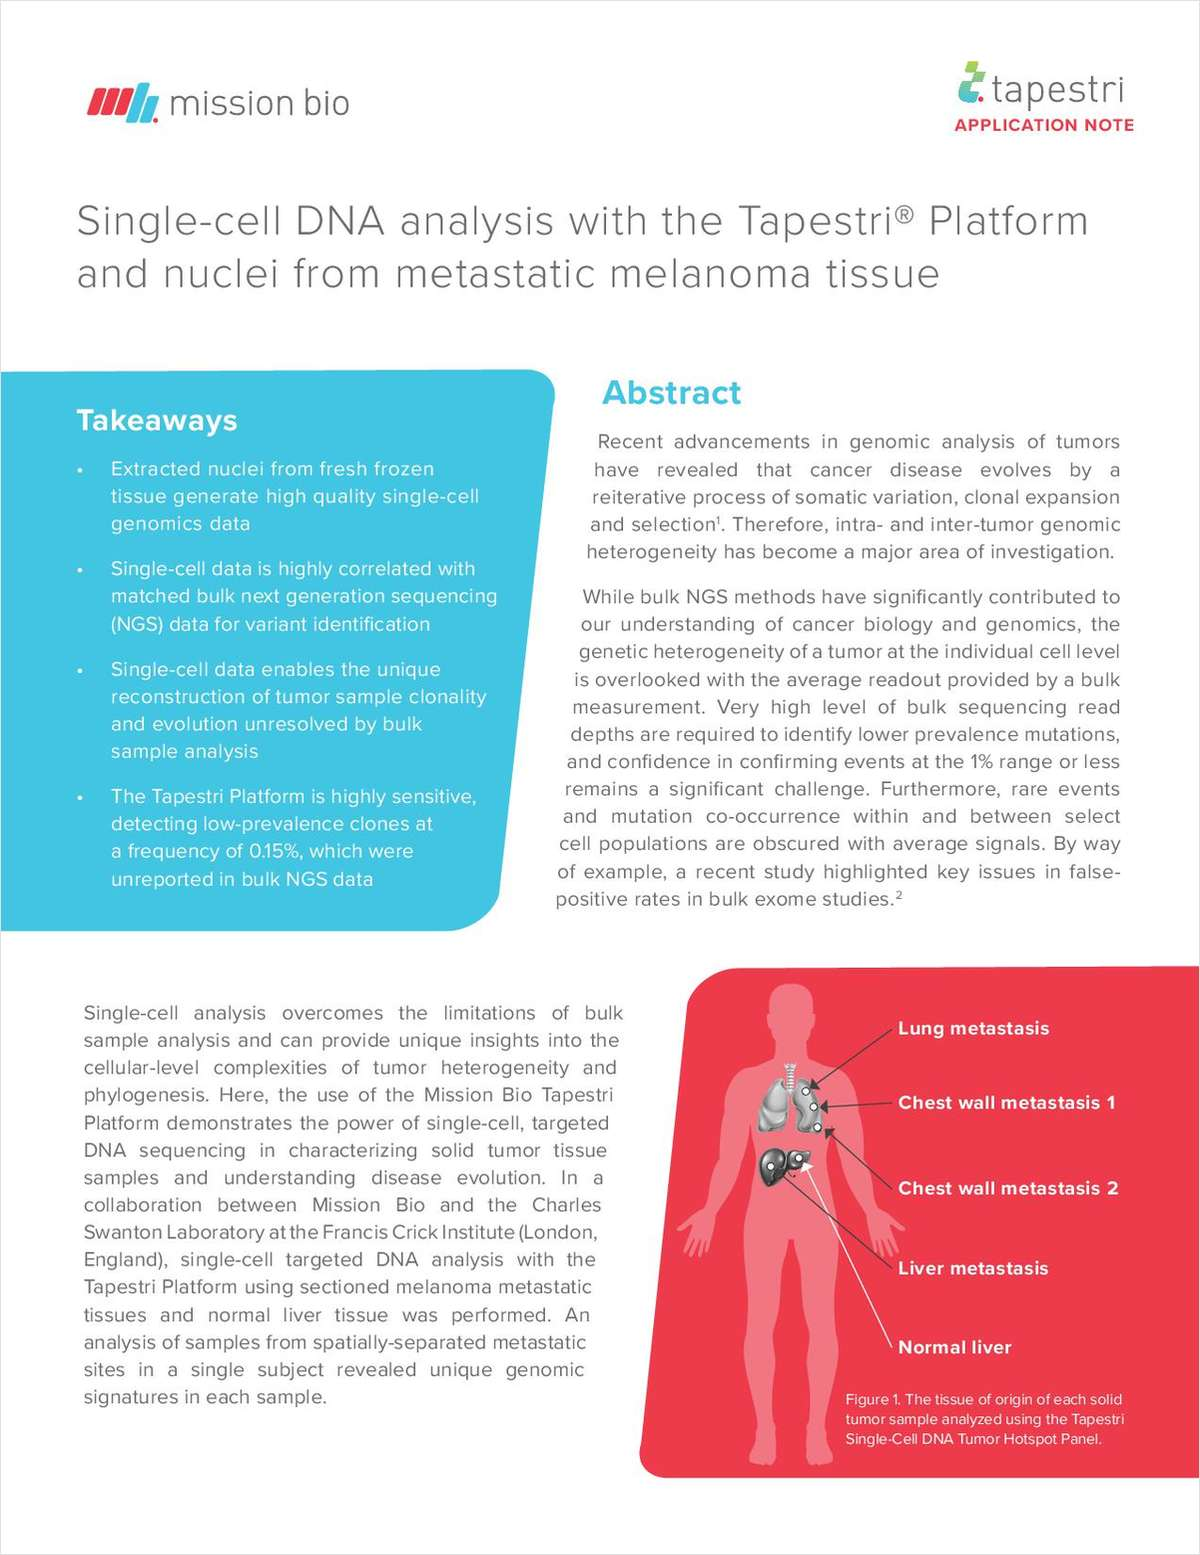 Single-Cell DNA Analysis With the Tapestri Platform and Nuclei From Metastatic Melanoma Tissue